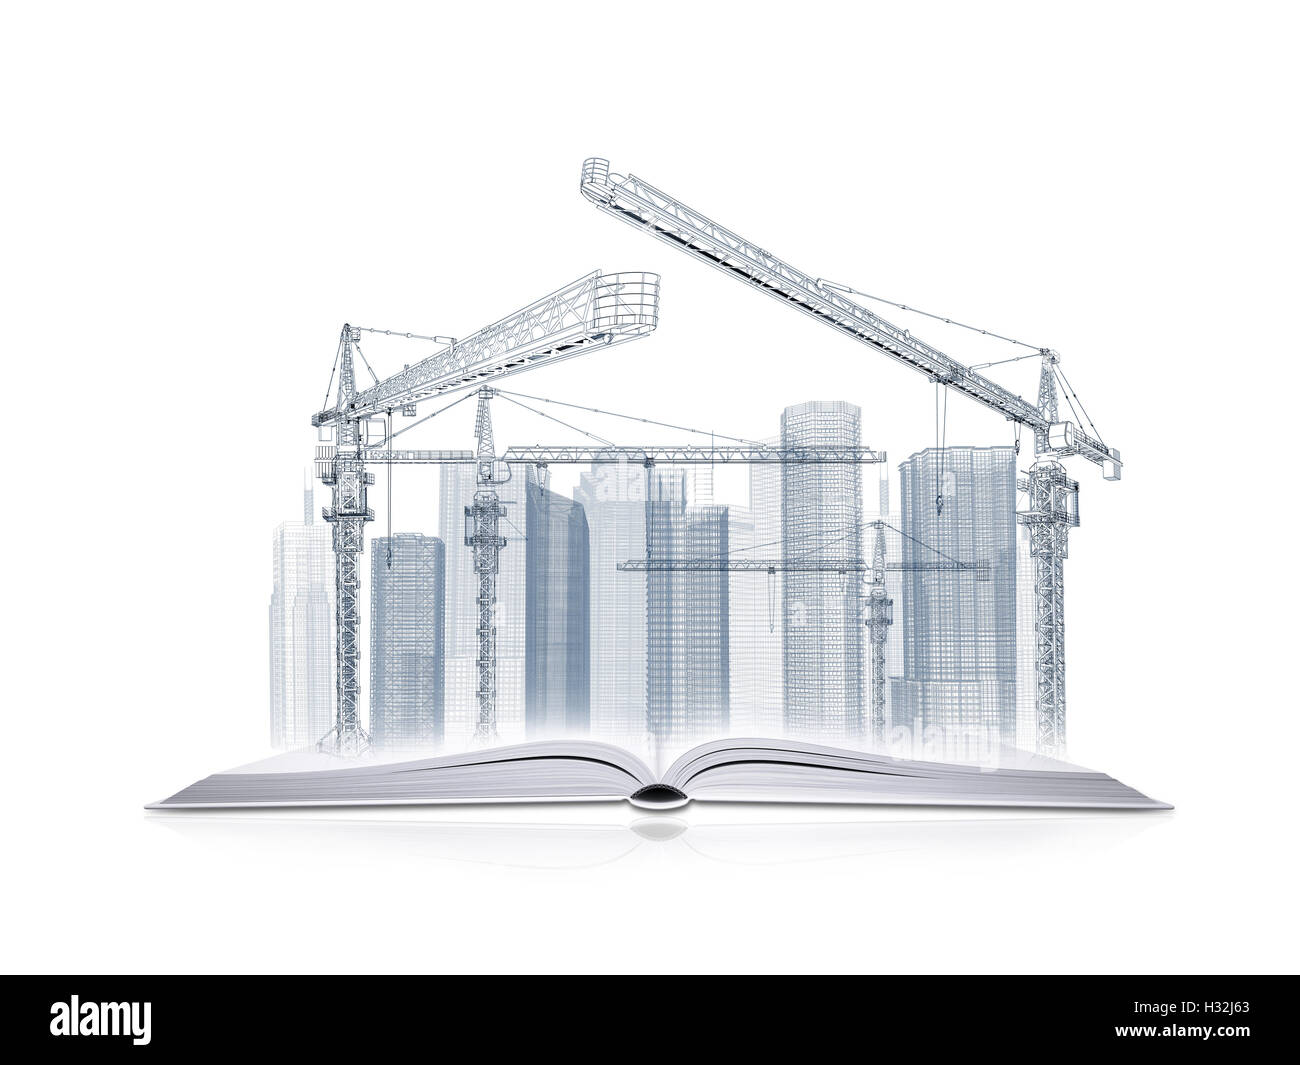 Page three model photos page three model images alamy - Lincroyable maison book tower londres ...